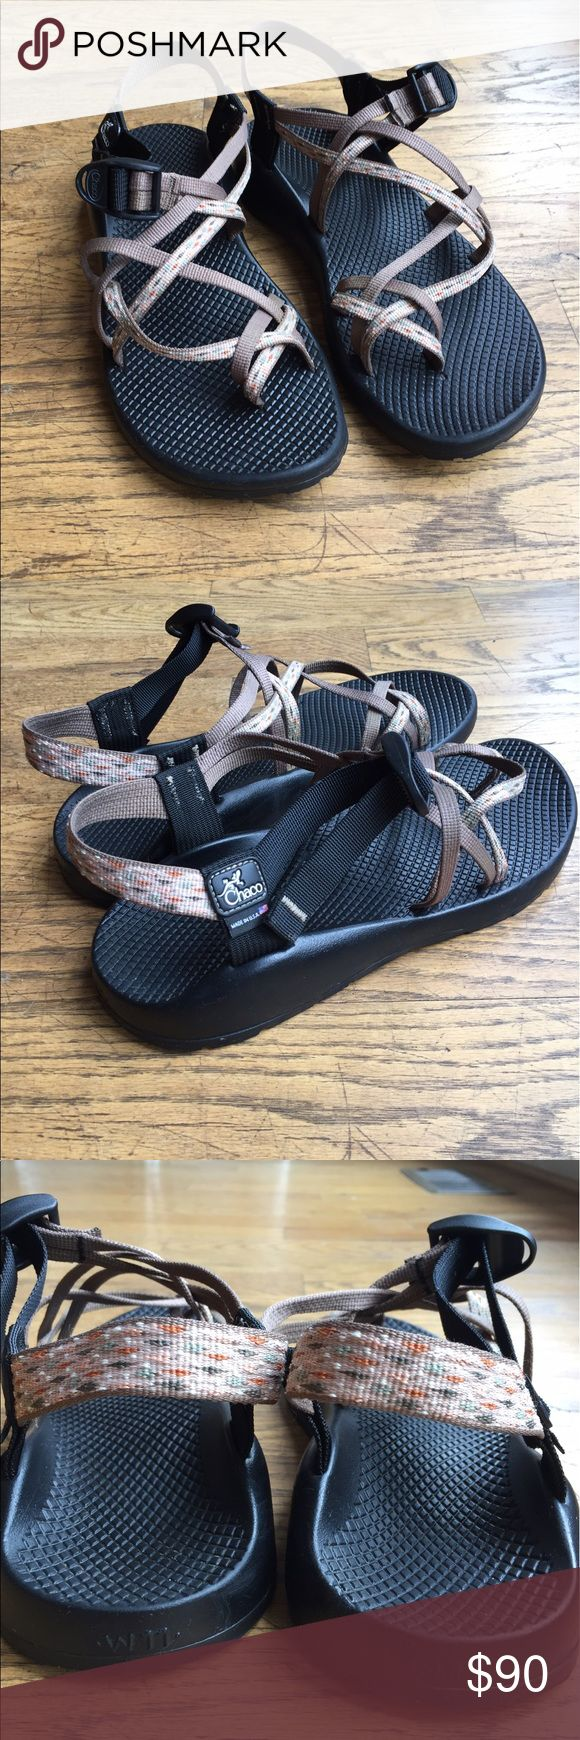 Women's Chacos - ZX/2 Colorado ZX/2 Colorado - size 11 - worn maybe 5 times. Excellent condition - color is Retro Cabin (black soles, khaki and khaki patterned double strapping). Chaco Shoes Sandals